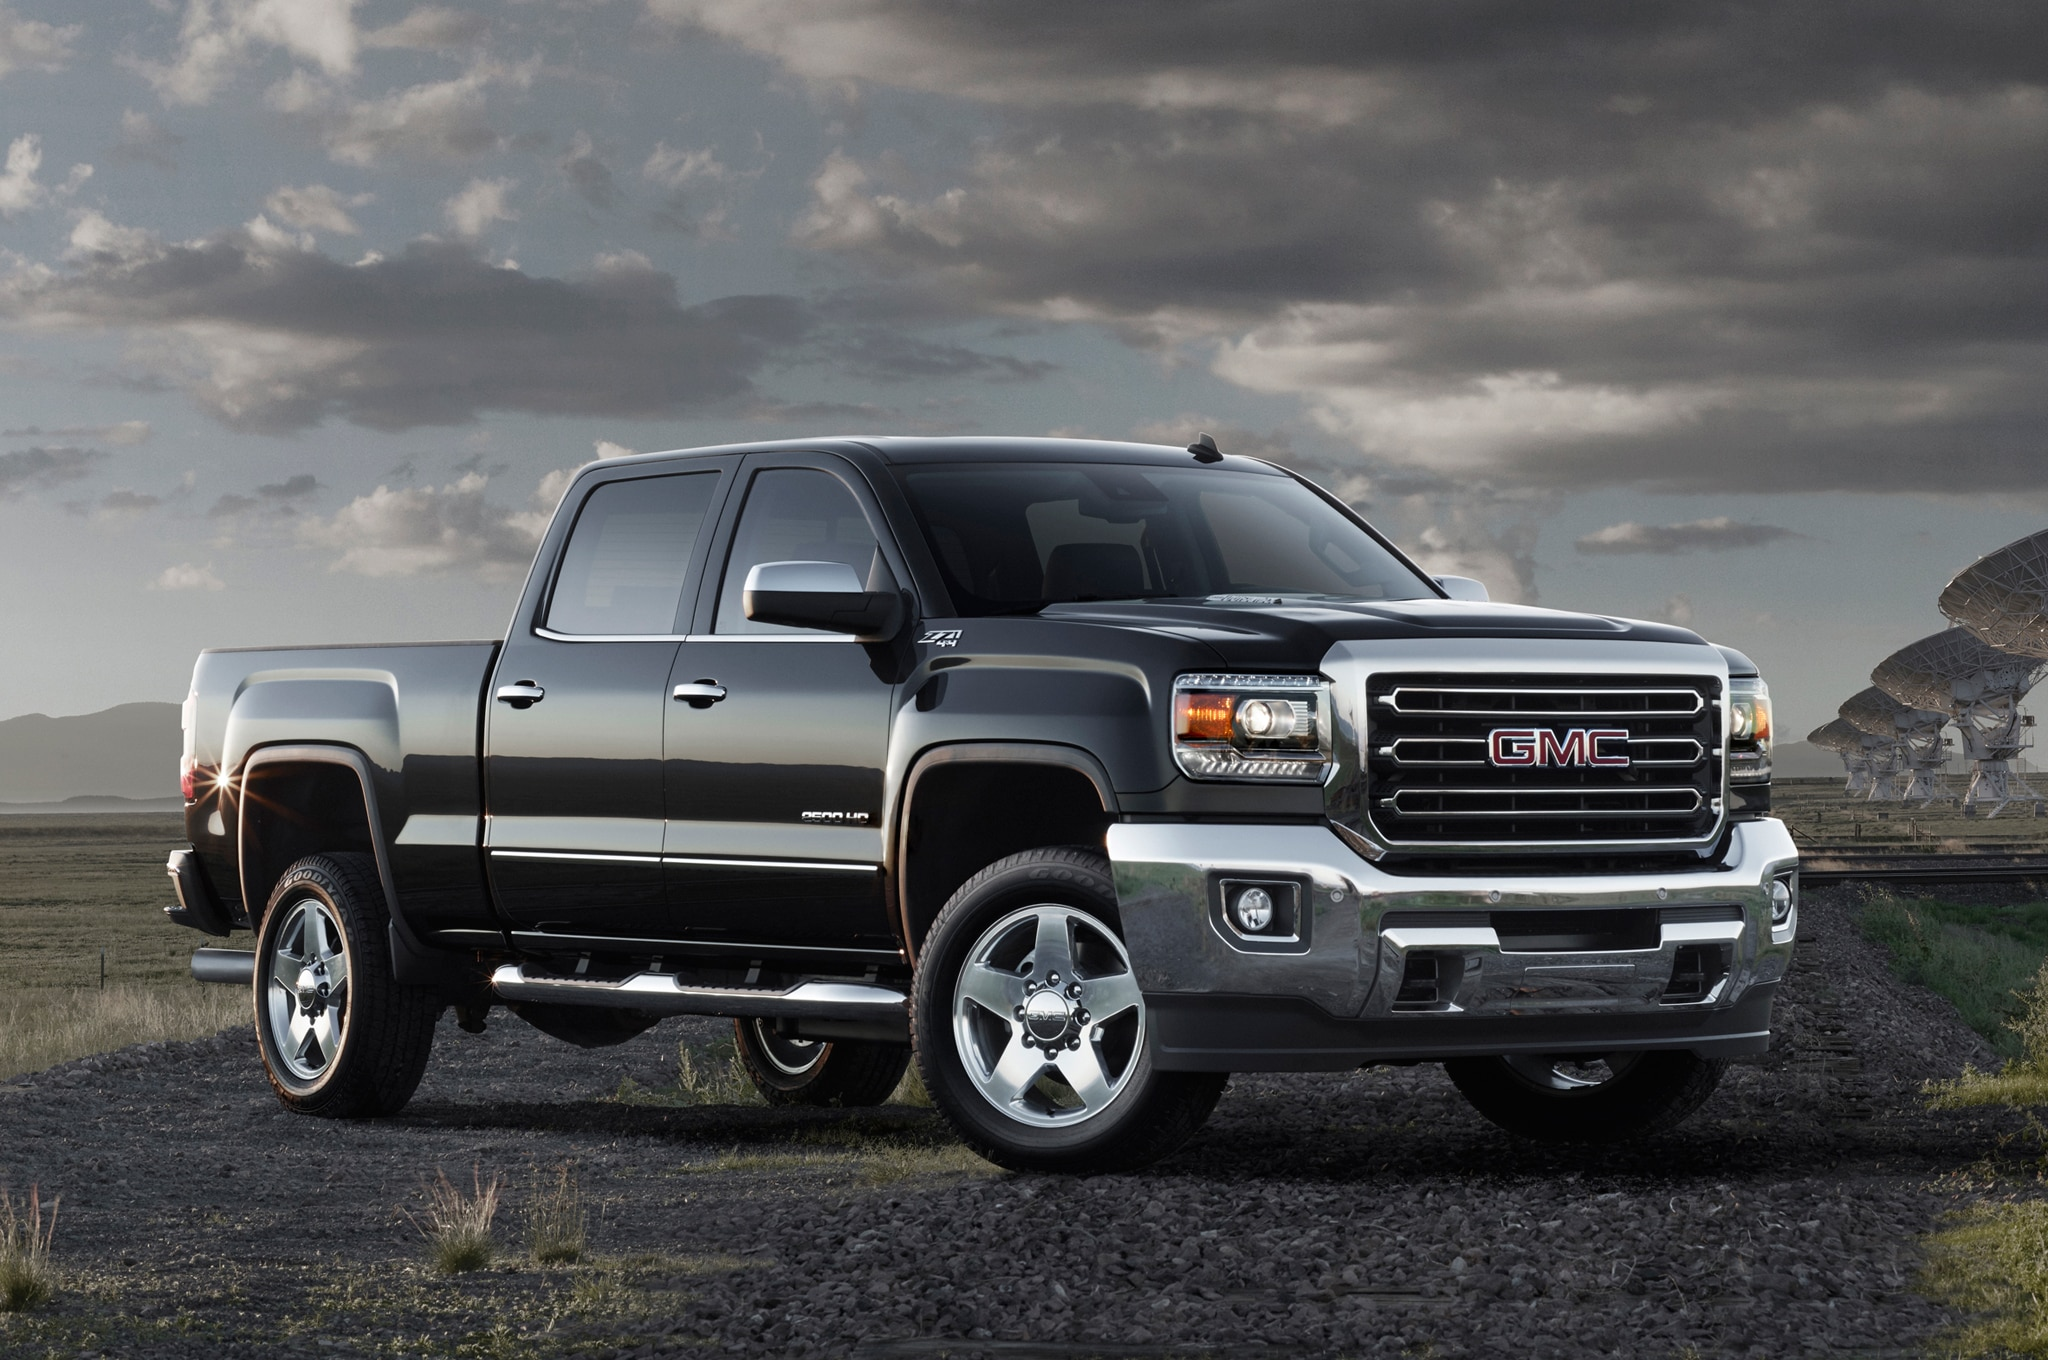 2015 GMC Sierra 2500HD front view 02